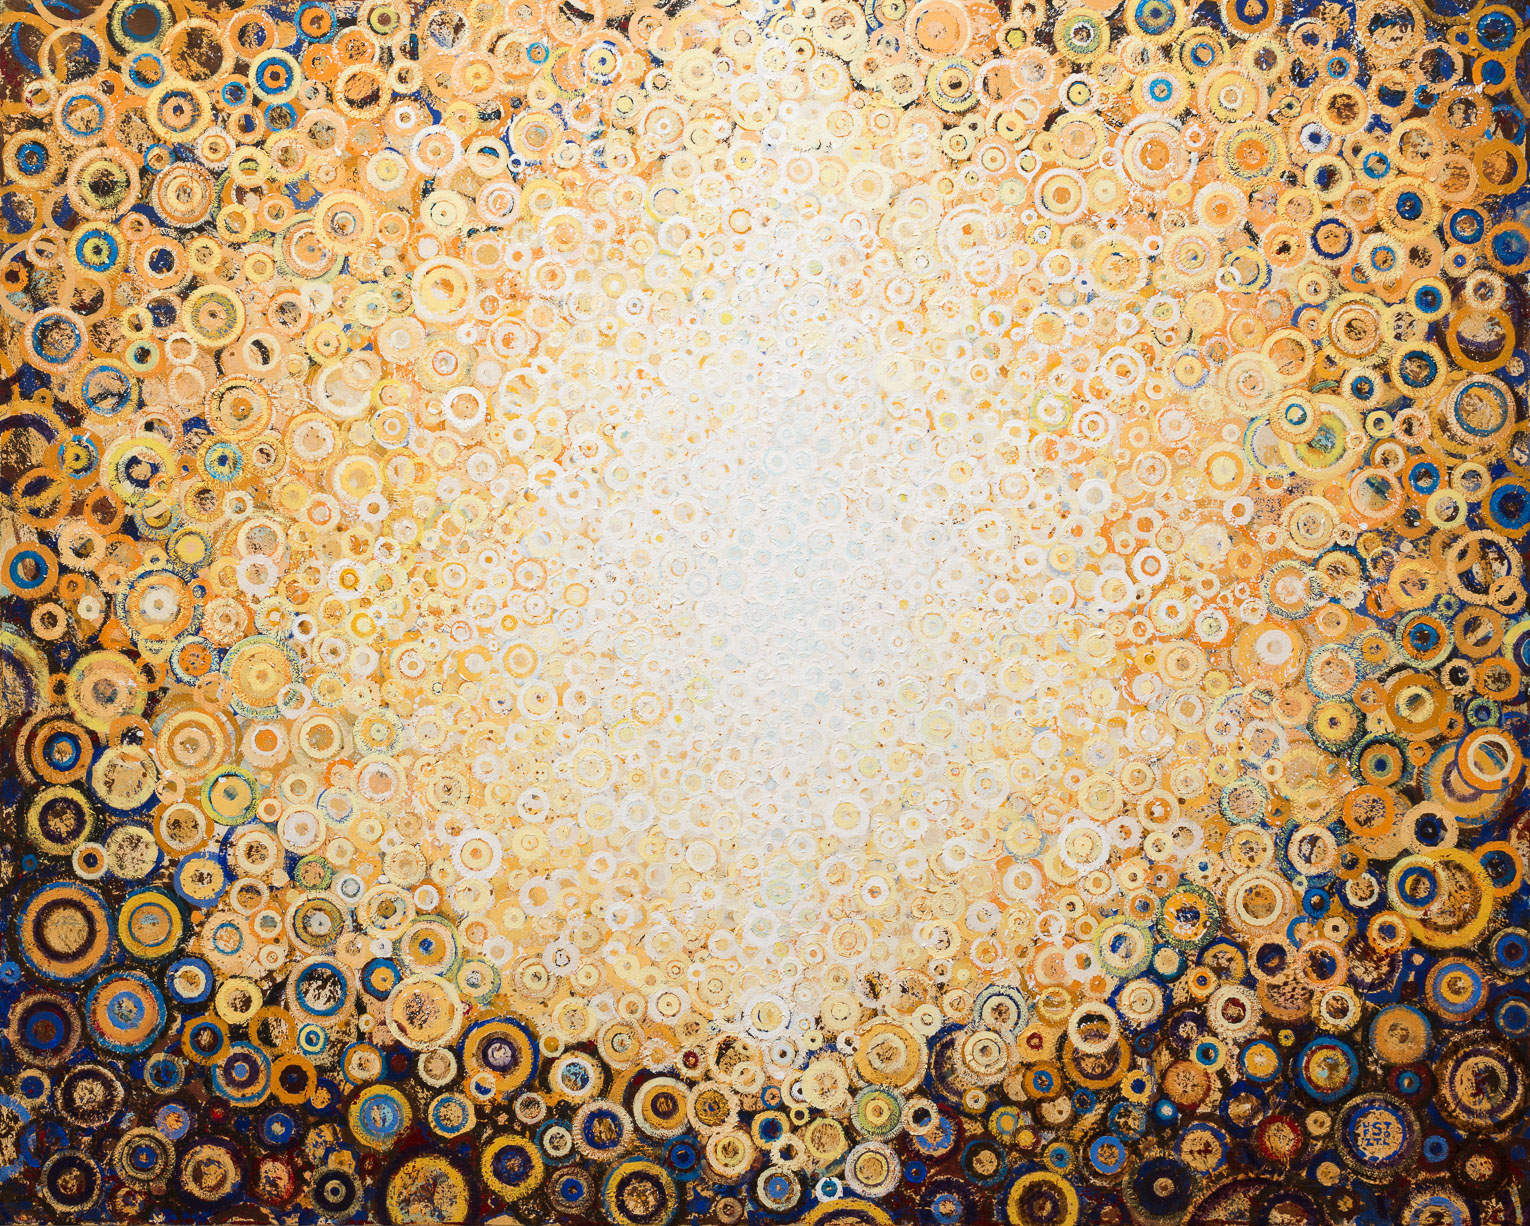 """""""Rajah"""" by Randall Stoltzfus. 2015, acrylic dispersion on polymer canvas, 48 by 60 inches"""